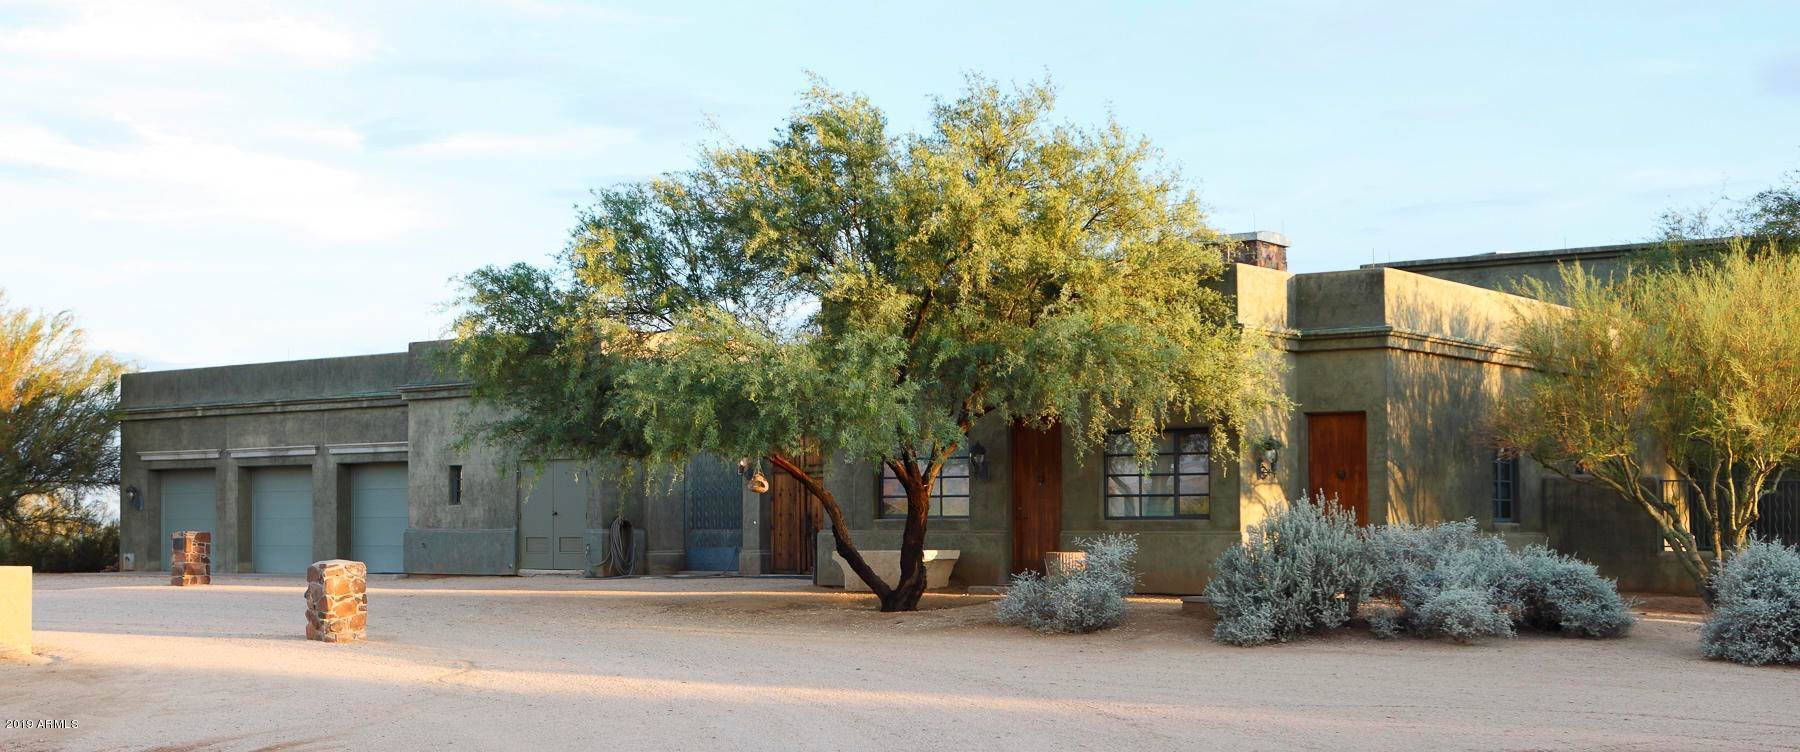 13. Single Family Home per Vendita alle ore 15860 E Rio Verde Drive Scottsdale, Arizona,85262 Stati Uniti